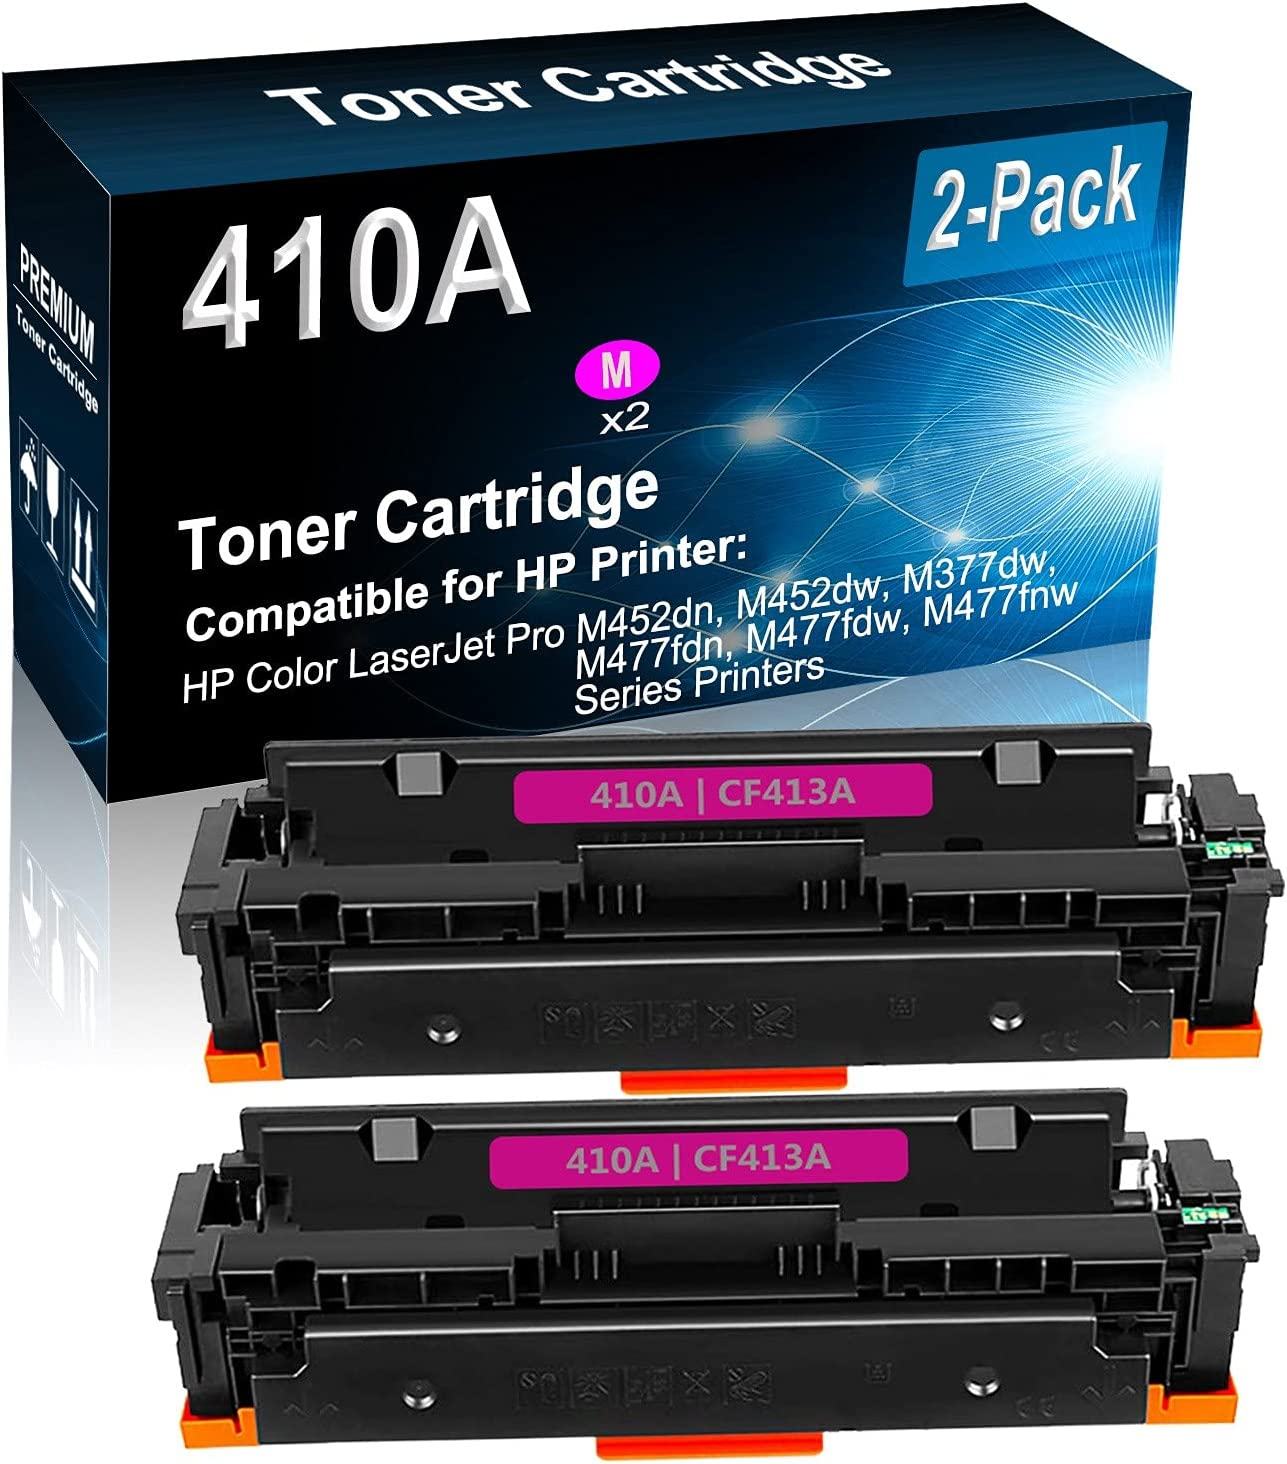 2-Pack (Magenta) Compatible M452dw, M377dw, M477fdn, M477fdw, M477fnw Color Toner Cartridge (High Capacity) Replacement for HP 410A (CF413A) Printer Toner Cartridge